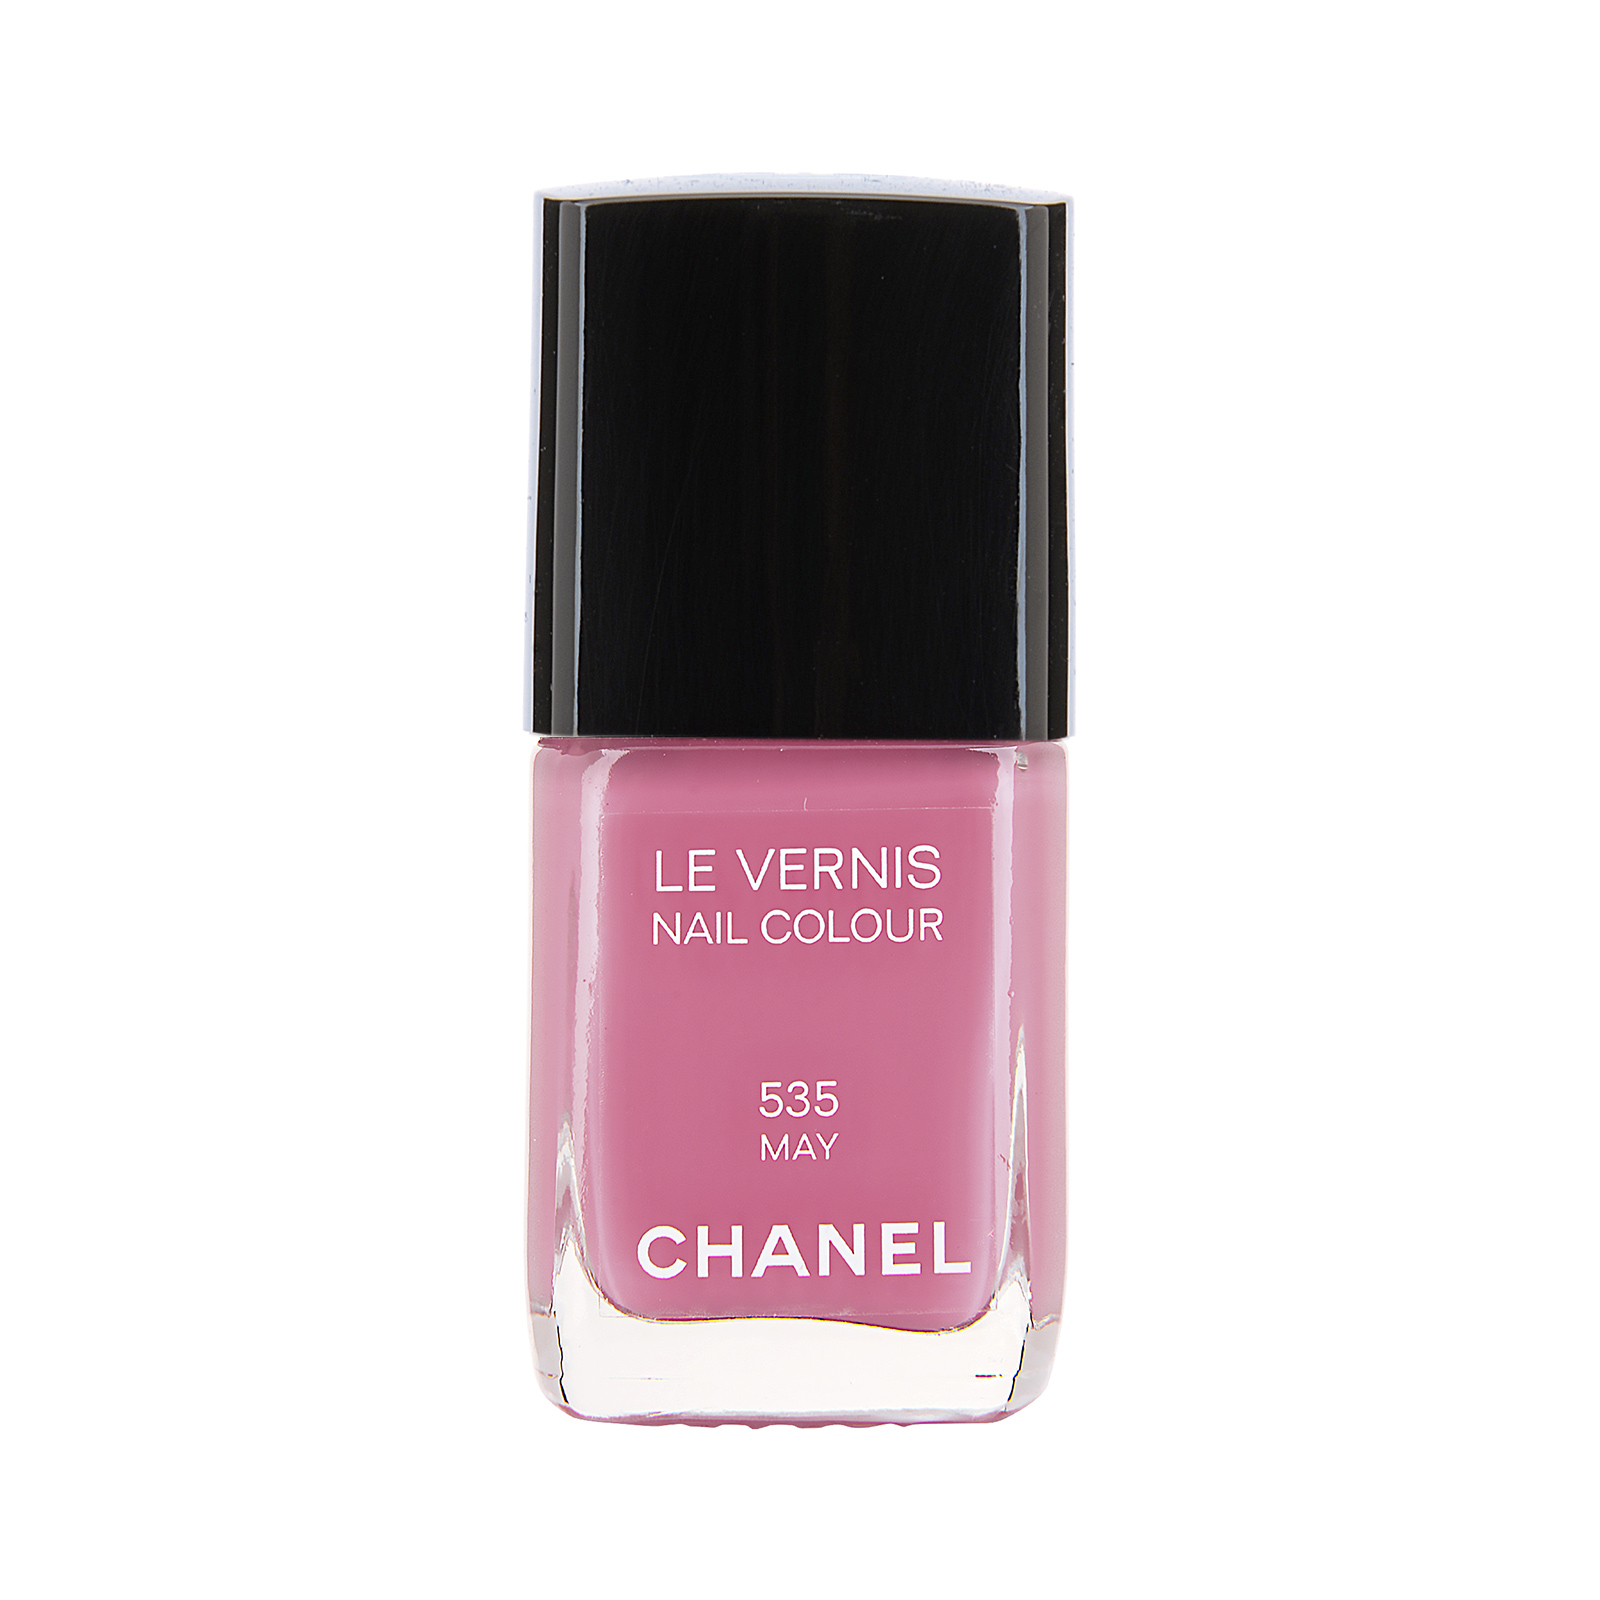 Chanel Le Vernis Nail Colour 535 May, 0.4oz, 13ml